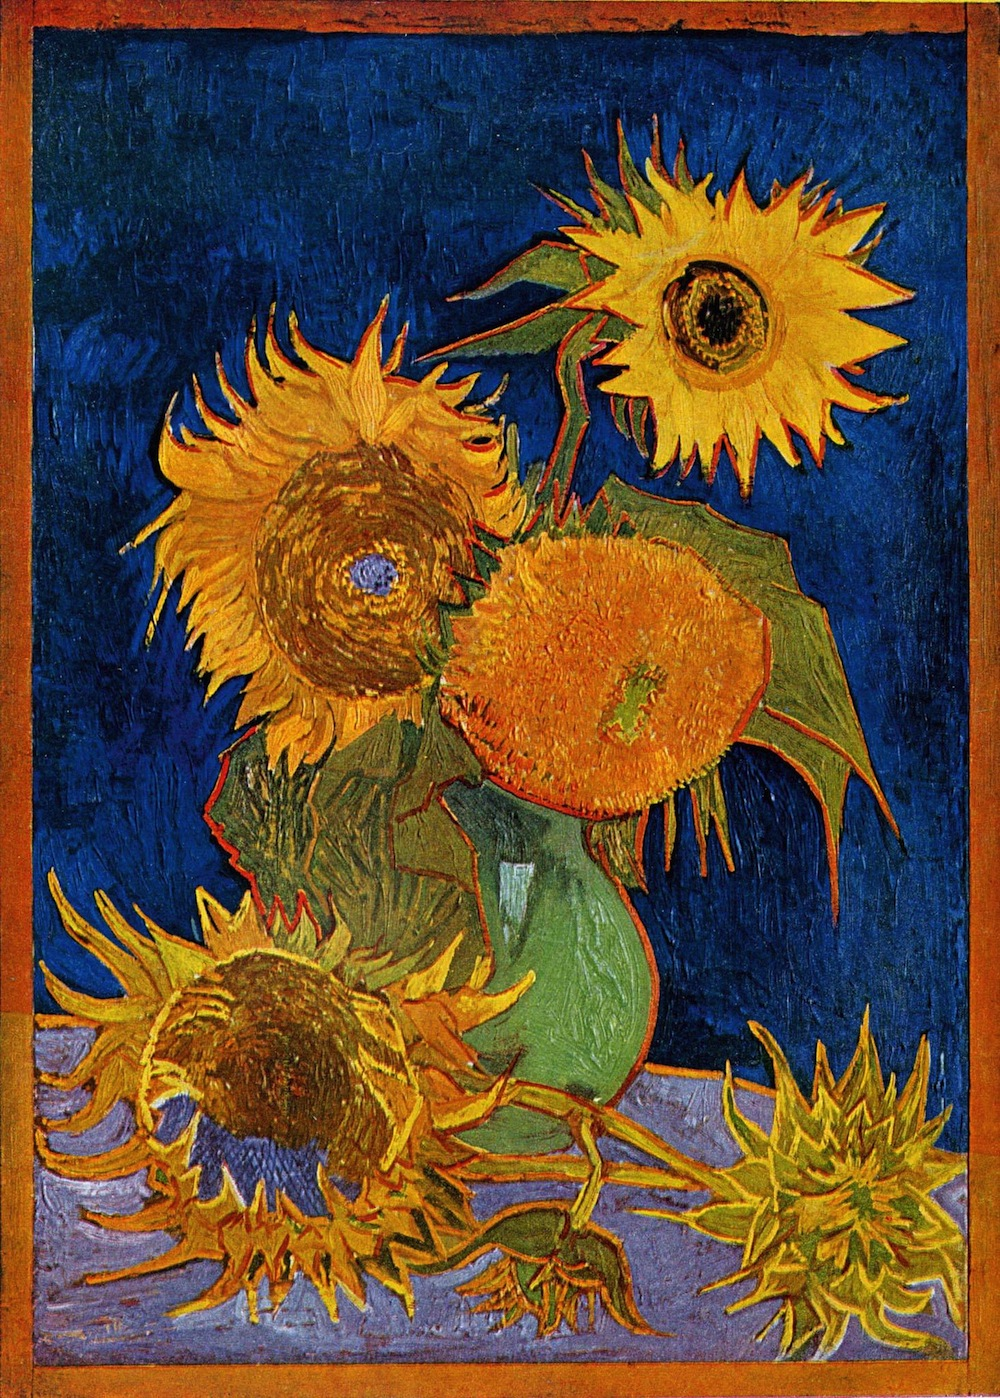 https://en.wikipedia.org/wiki/Sunflowers_(Van_Gogh_series)